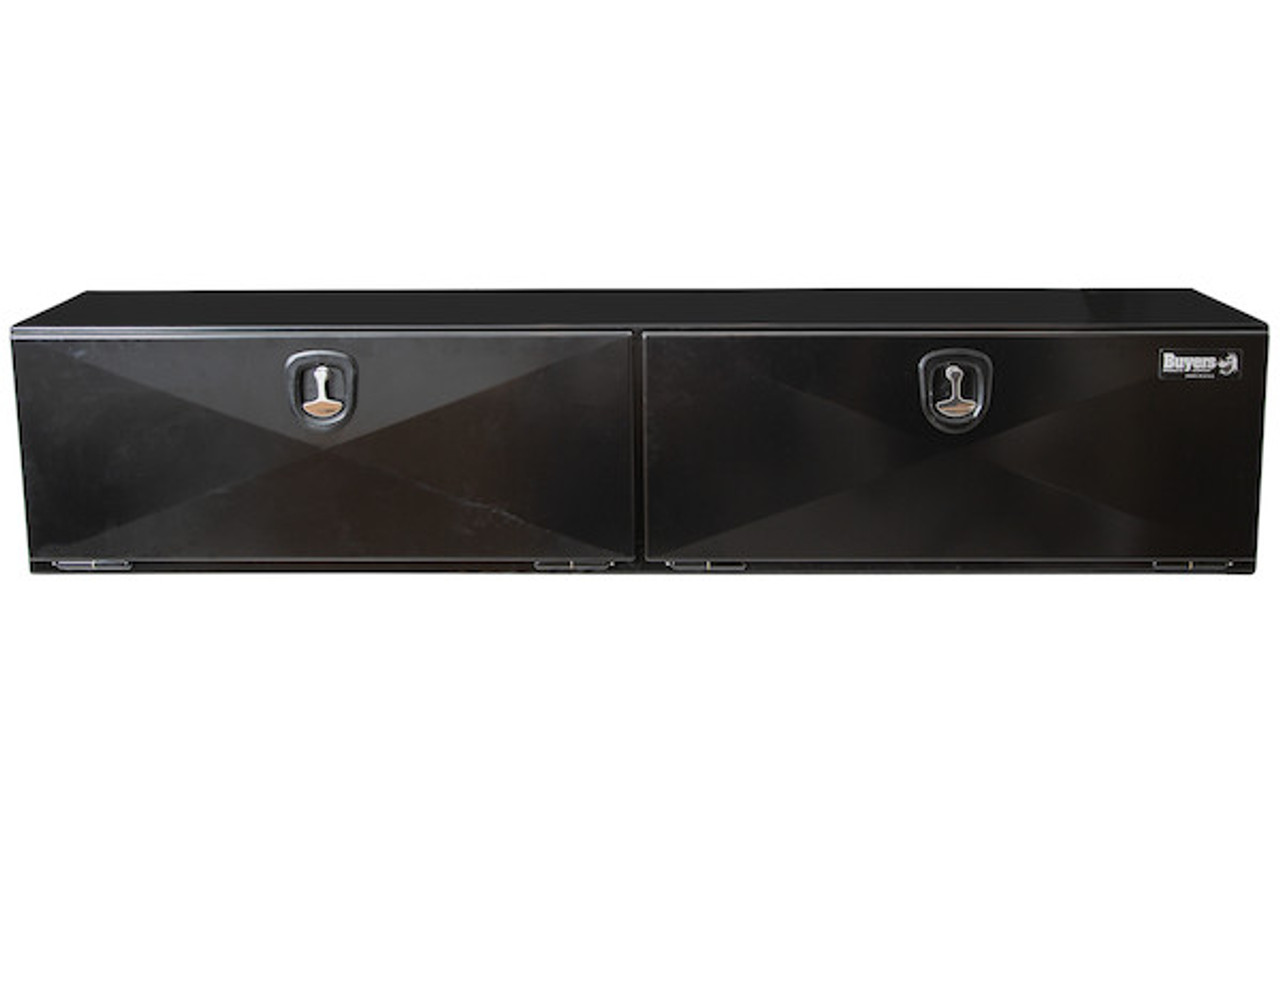 """1742325 BUYERS PRODUCTS XD BLACK STEEL UNDERBODY HEAVY DUTY TRUCK TOOLBOX 18""""Hx18""""Dx72""""W PICTURE # 4"""